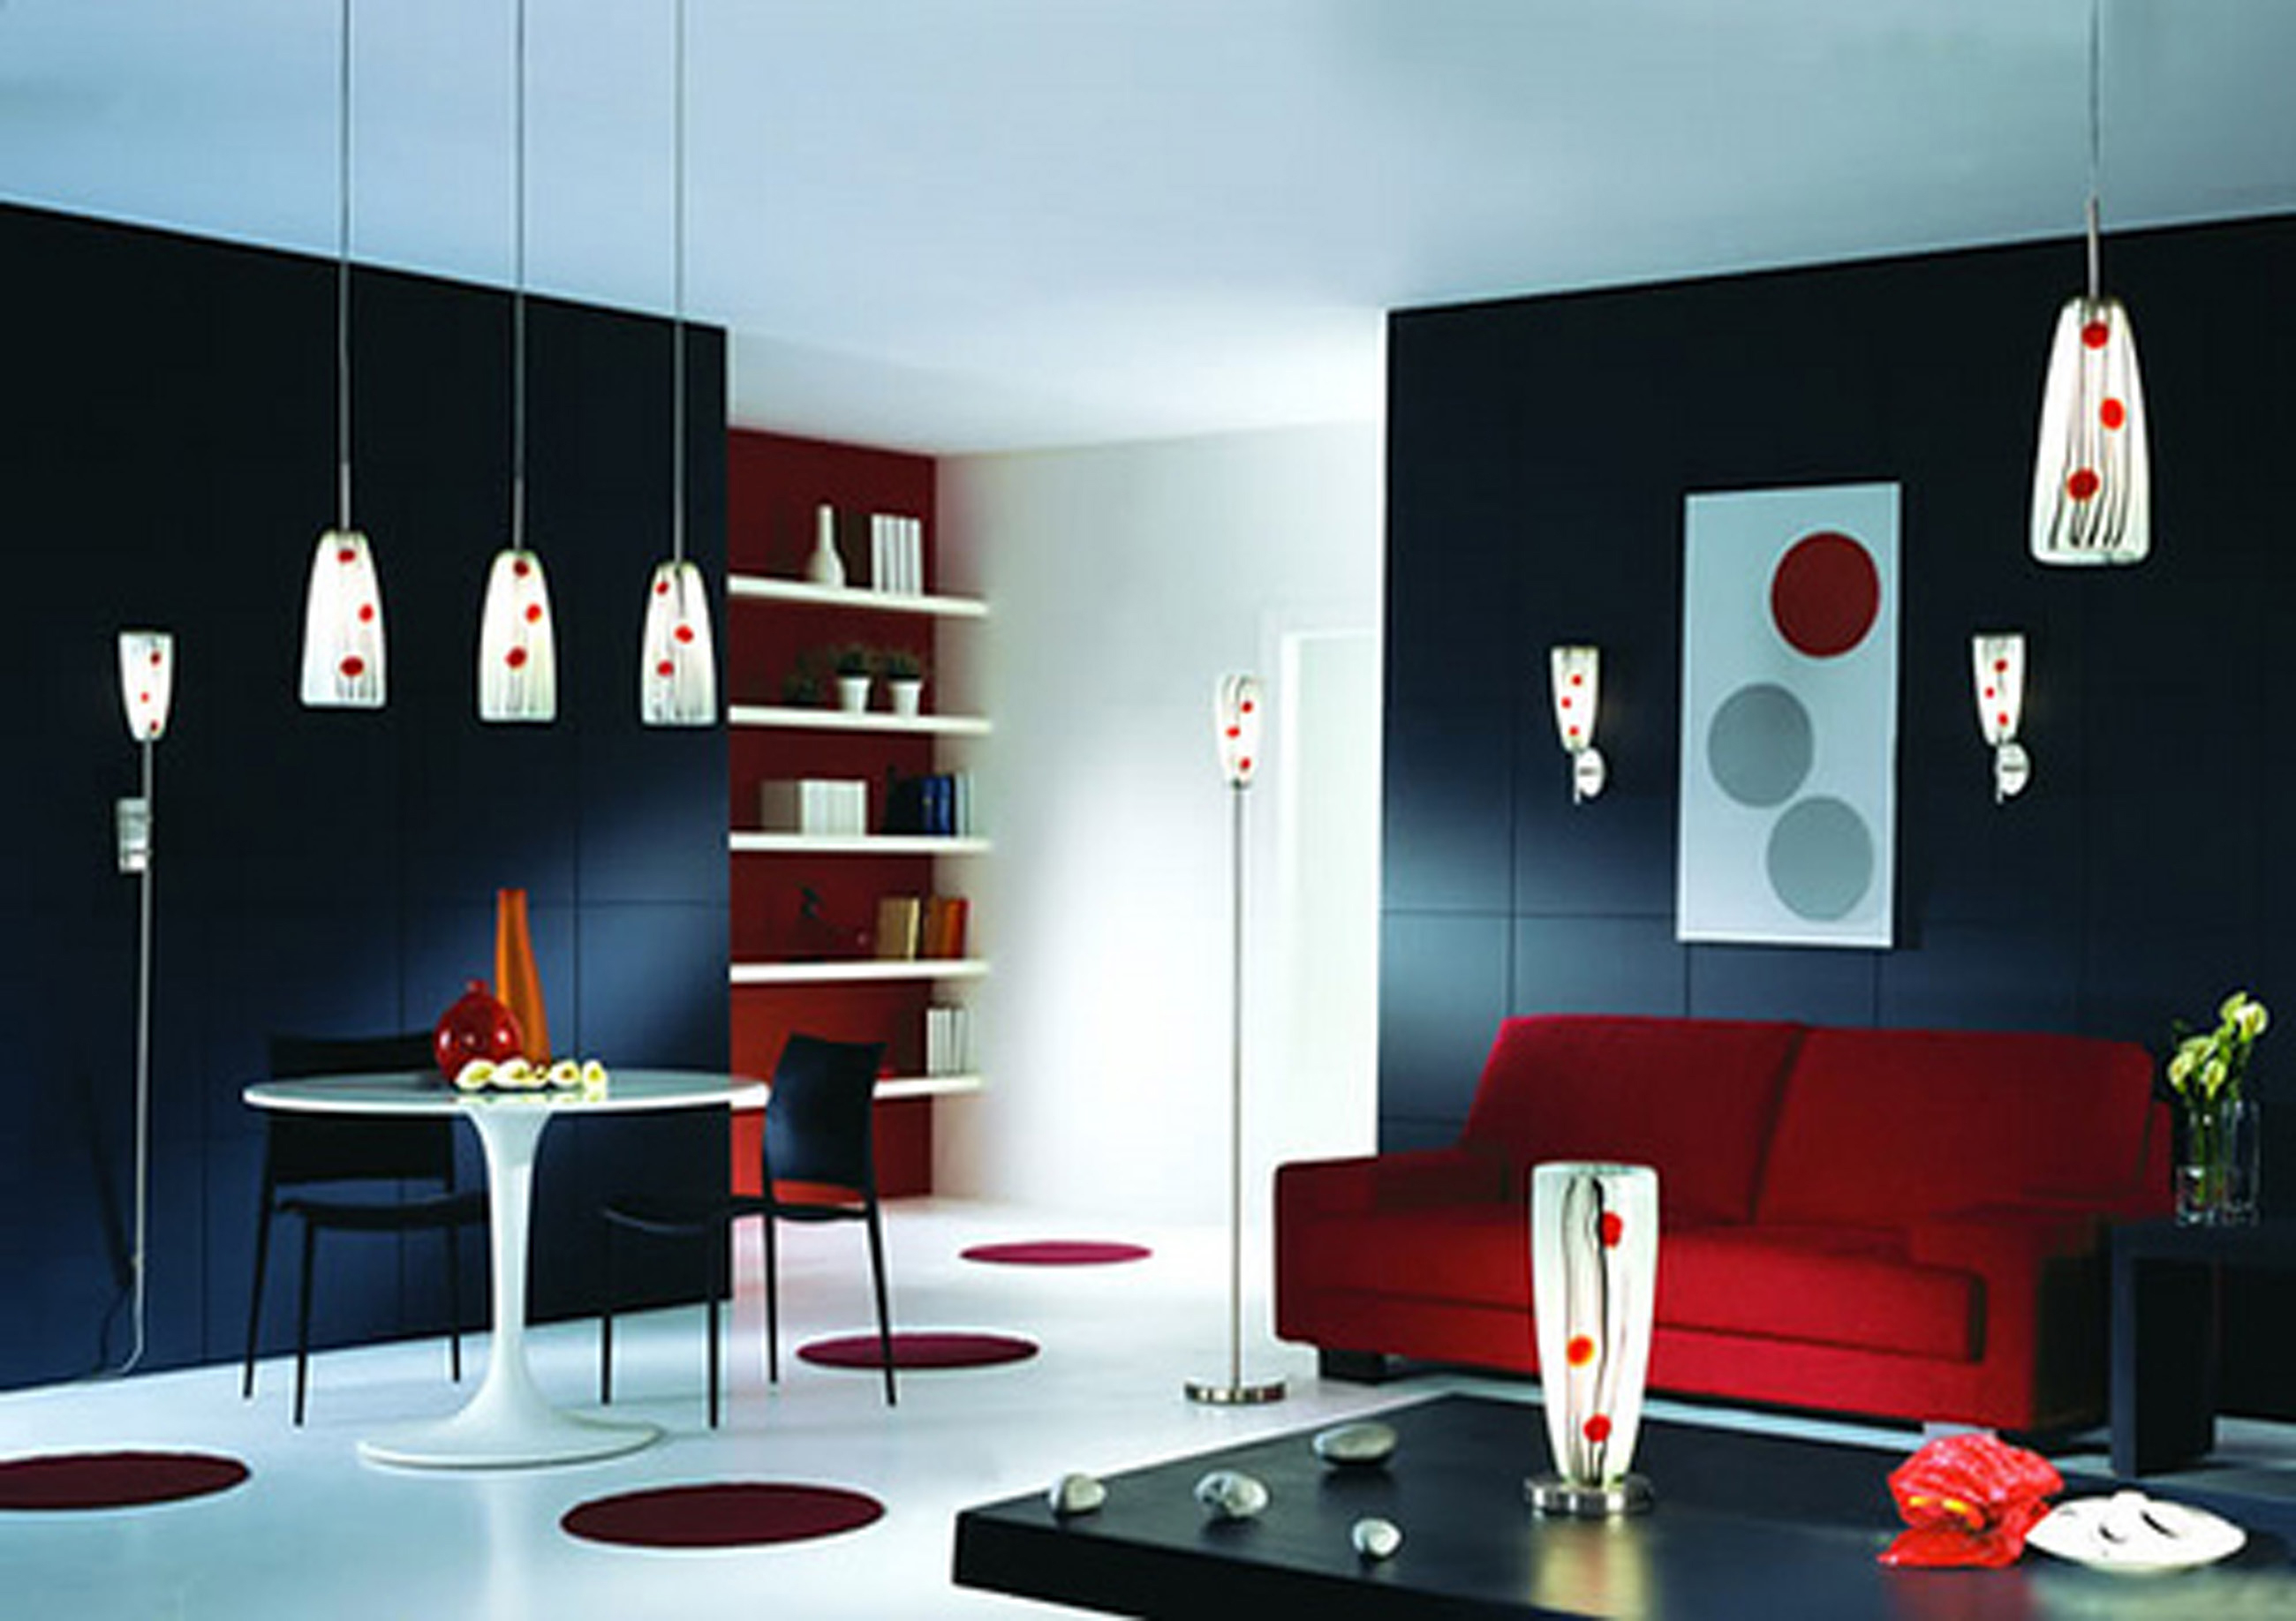 Apartments Decor Of Simple Design Ideas With Black Wall With Red Sofa Combined Black Table (Image 19 of 45)